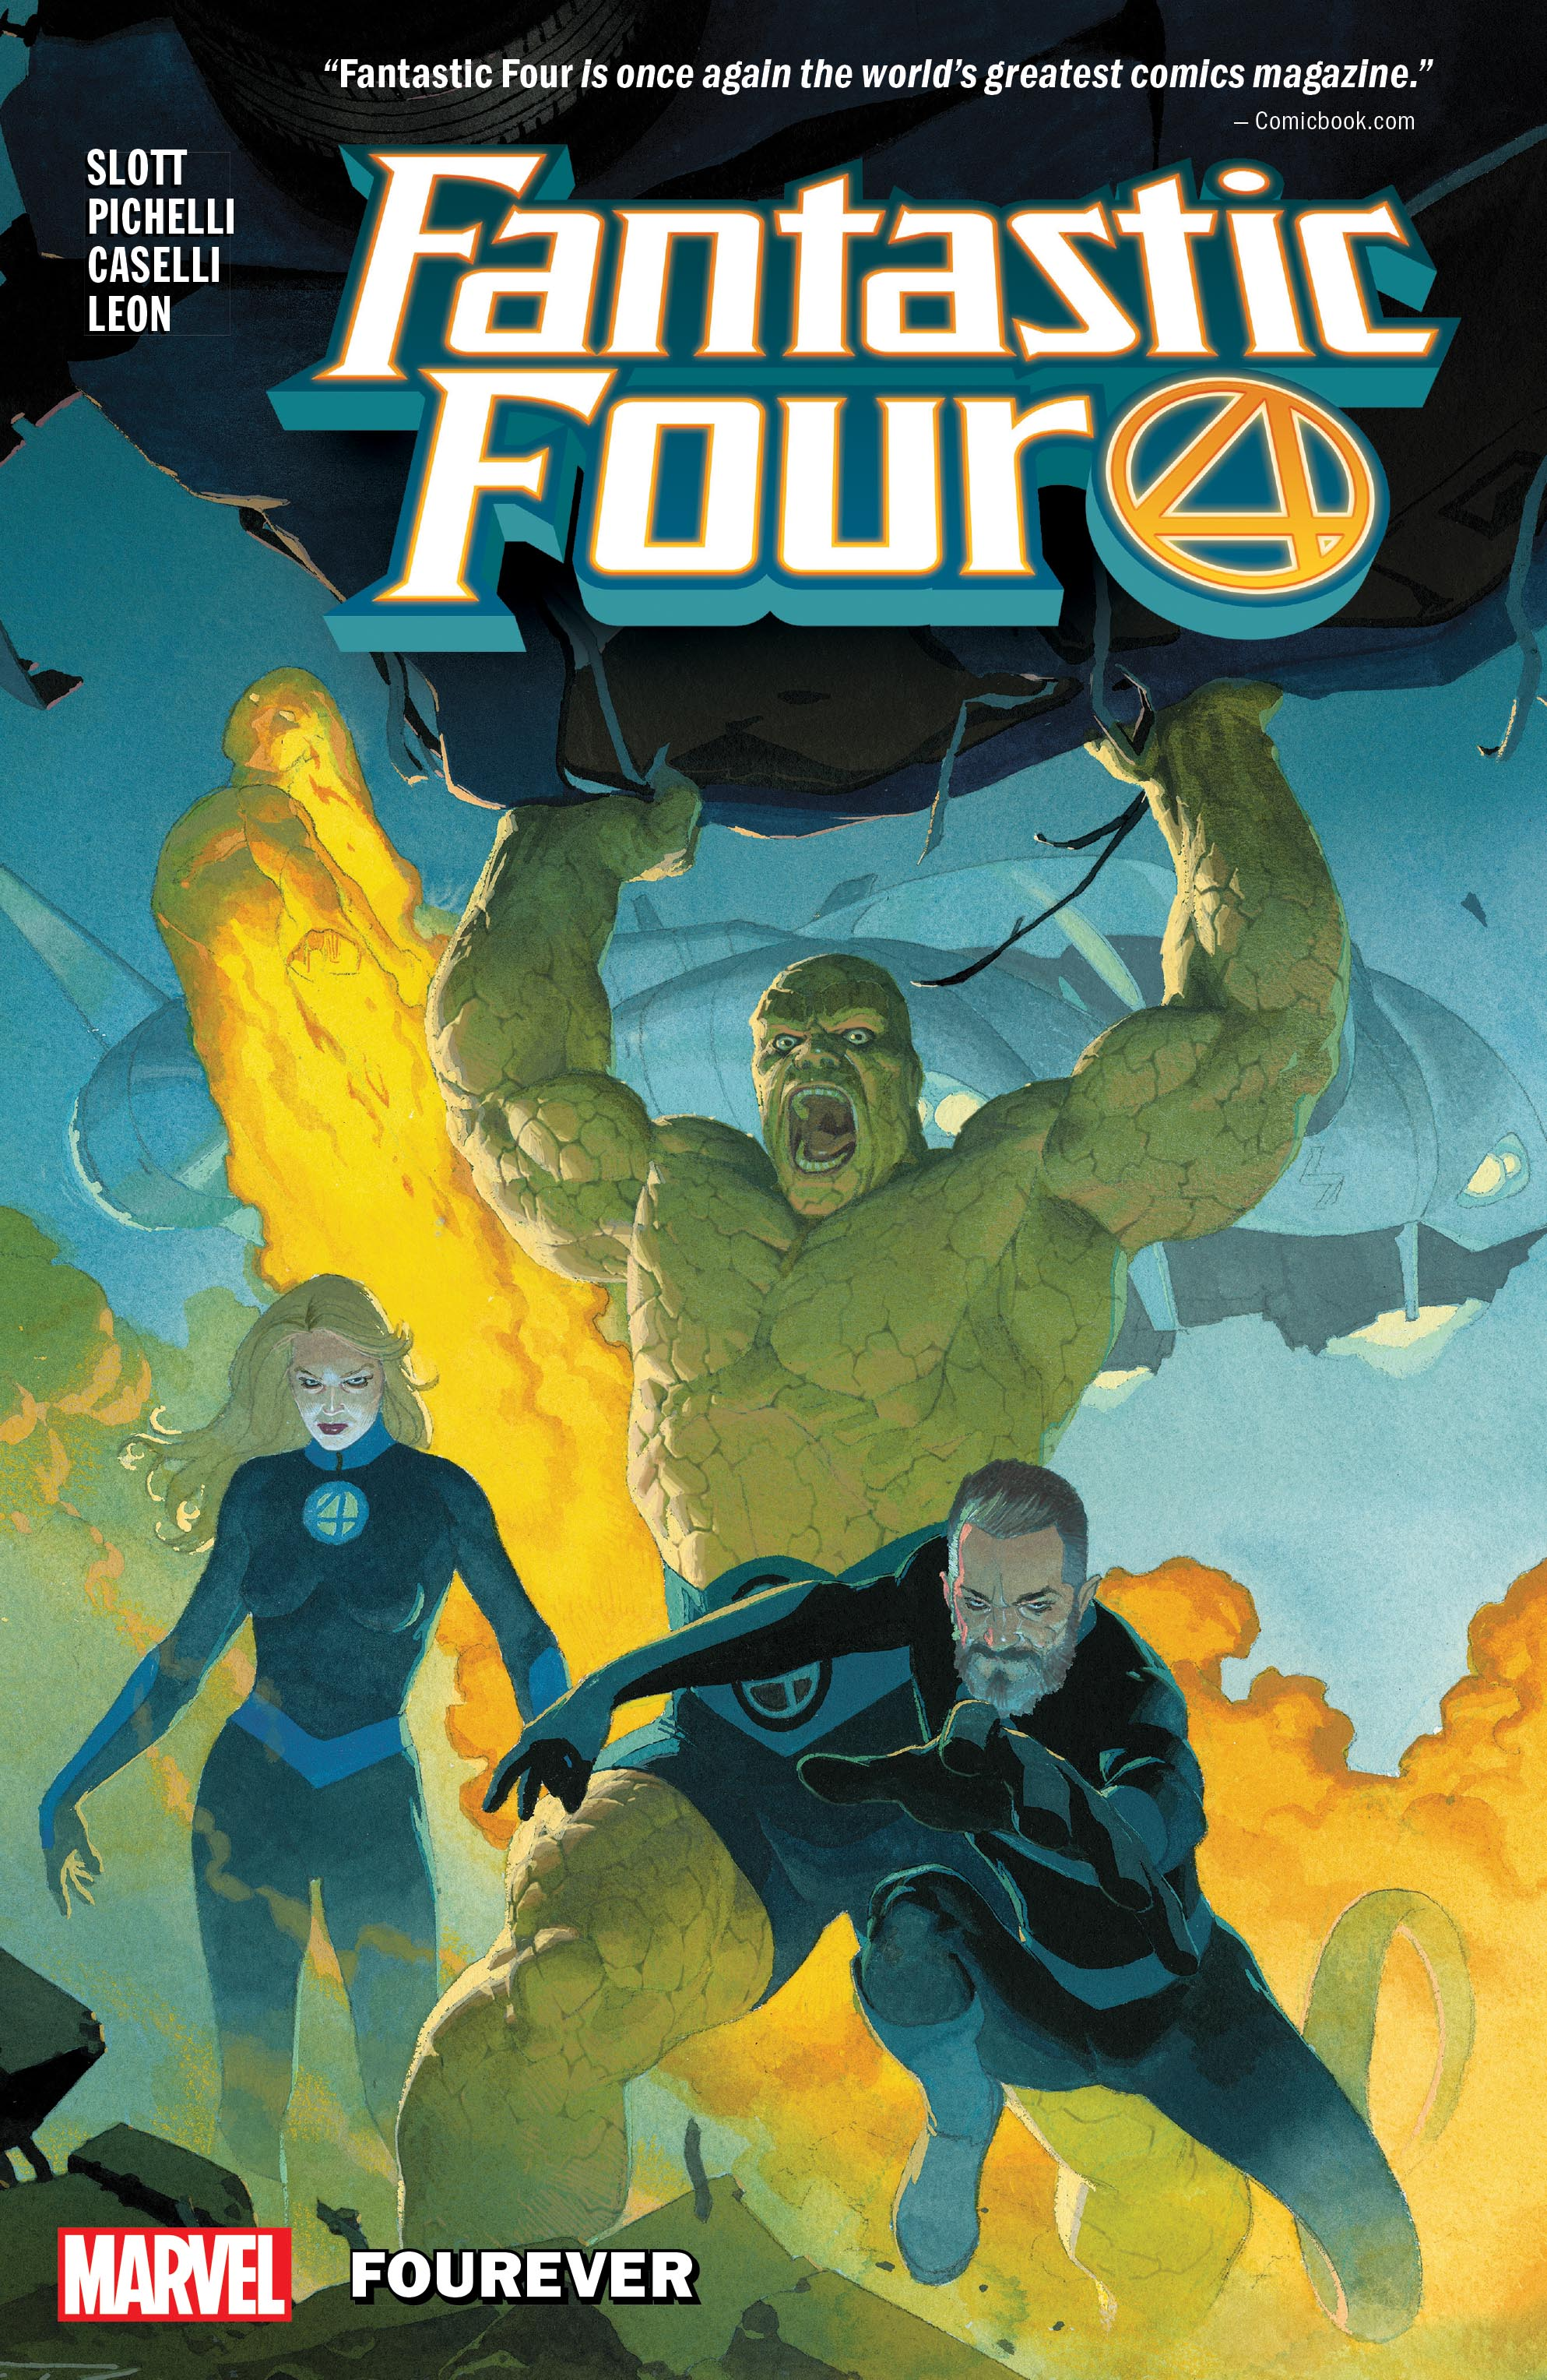 Fantastic Four Vol. 1: Fourever (Trade Paperback)